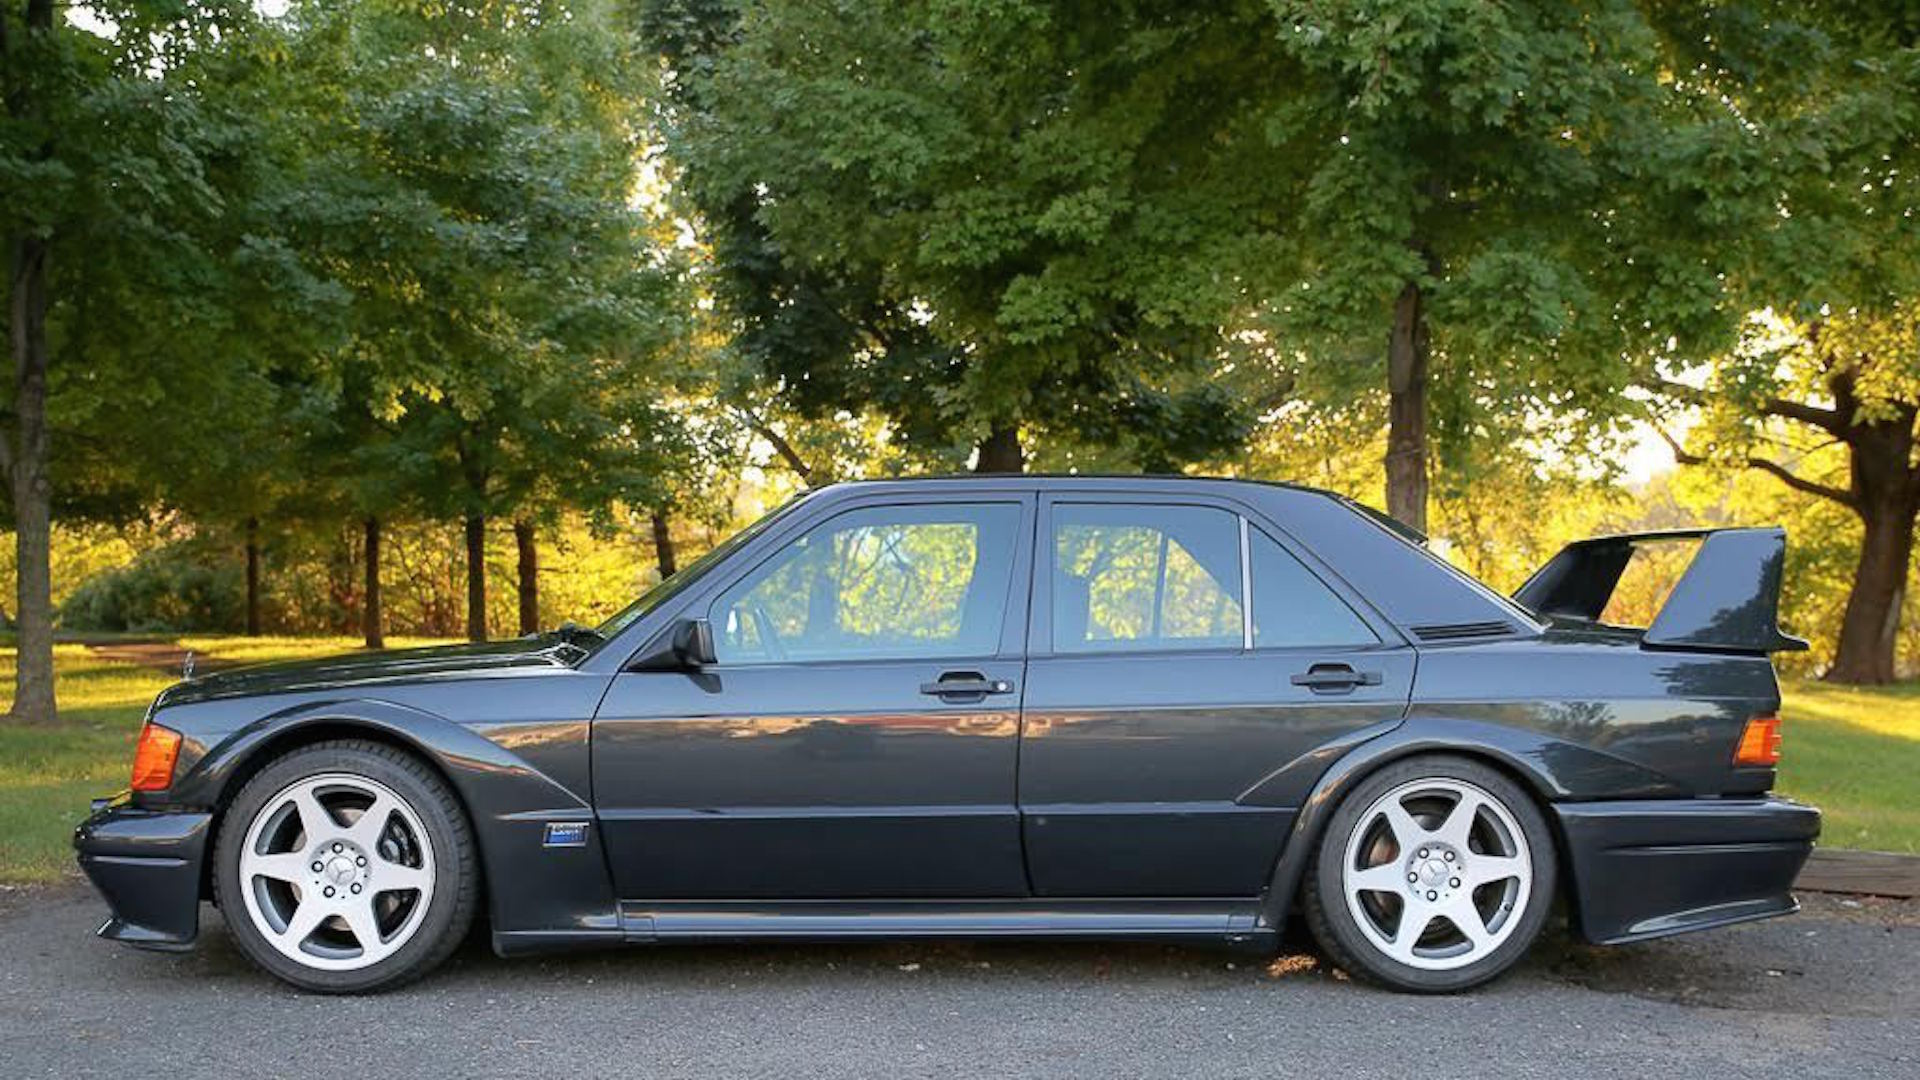 1990 Mercedes-Benz 190E Cosworth Evo II on eBay with 29,000 miles